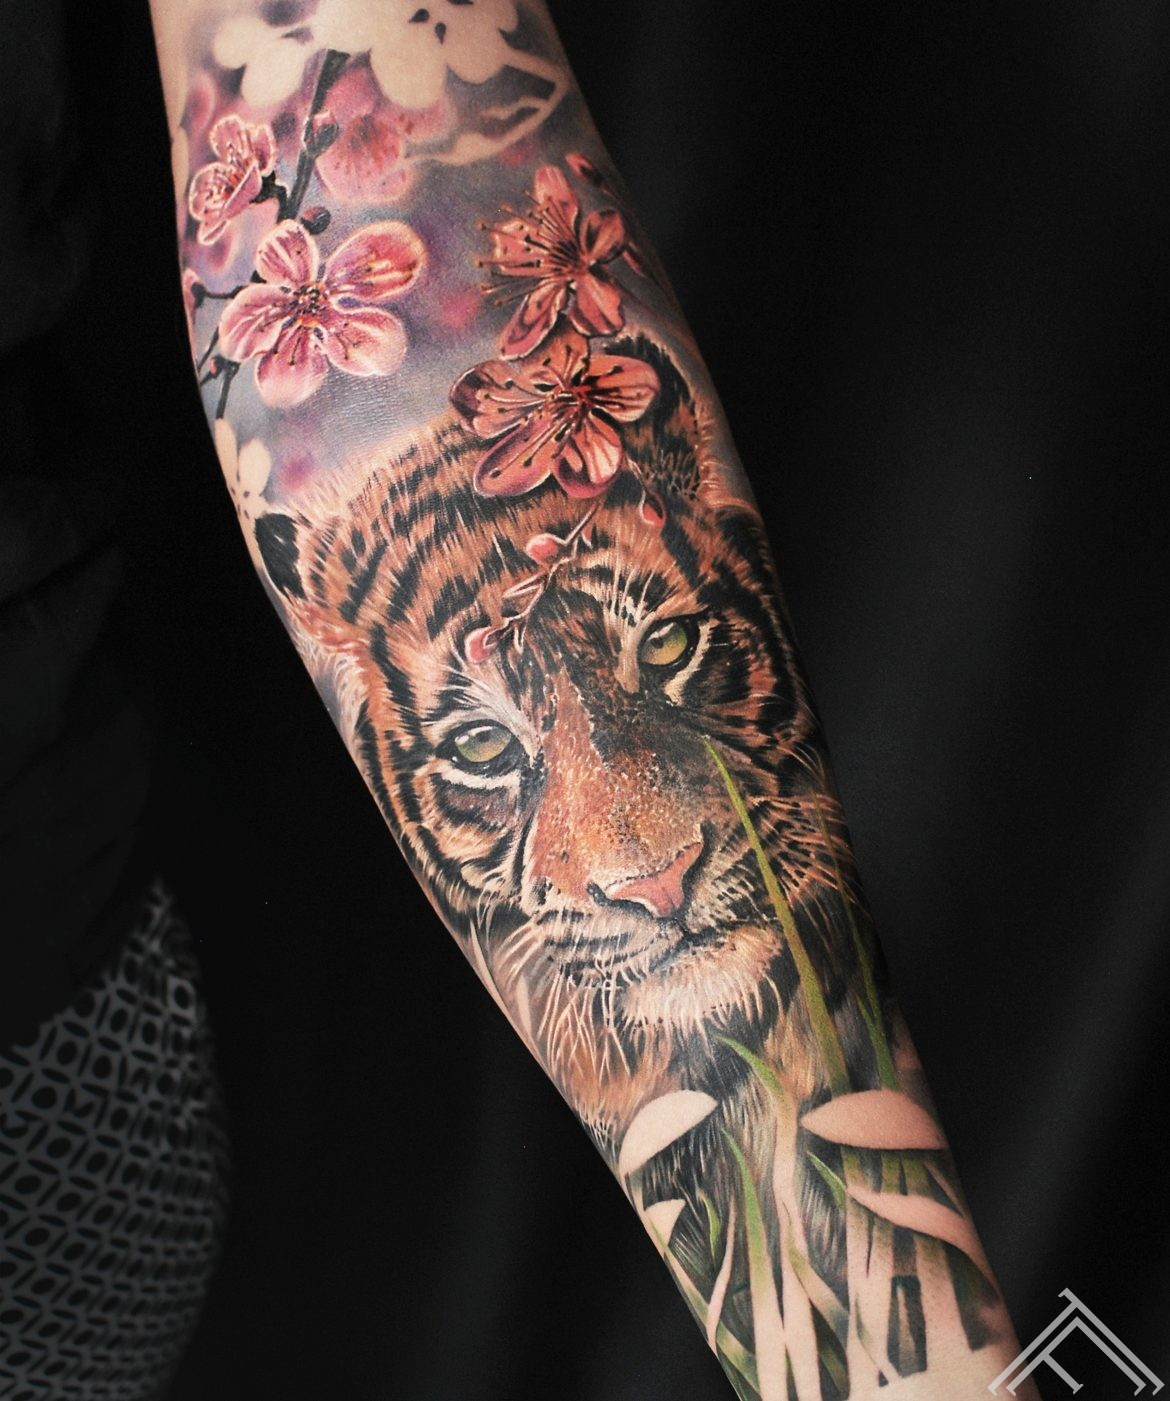 tiger-cat-tigeris-kakis-ziedi-flowers-cherryblossom-tattoofrequency-riga-art-marispavlo